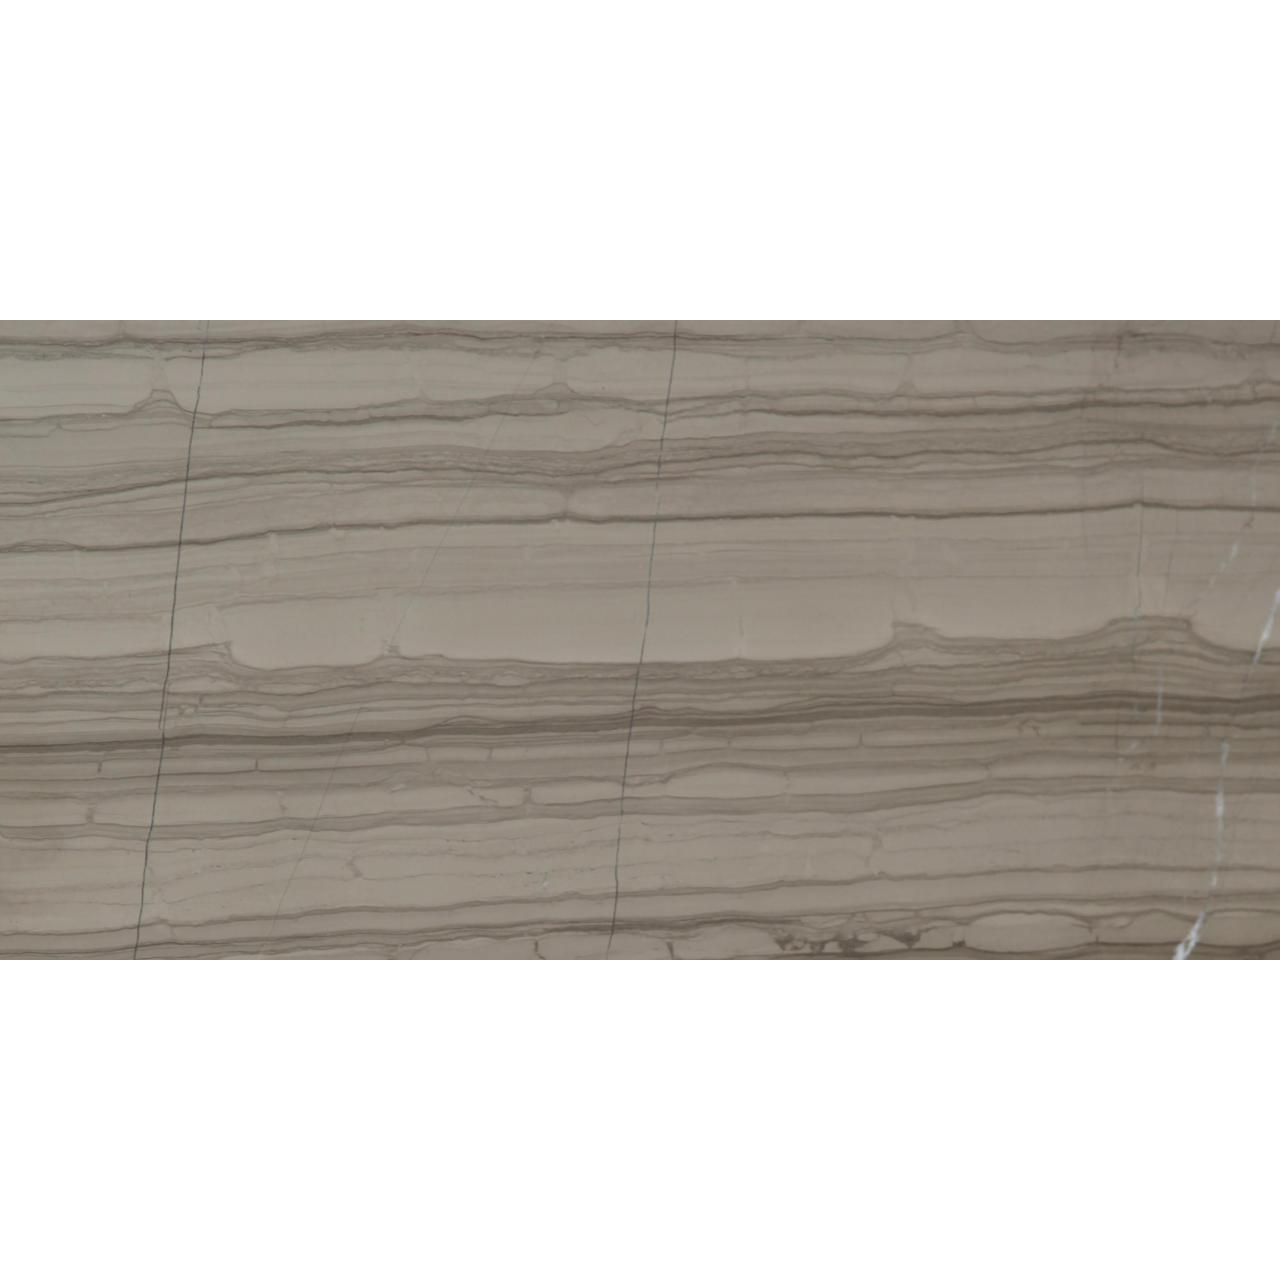 Quality Athens Gray Marble Tile for sale